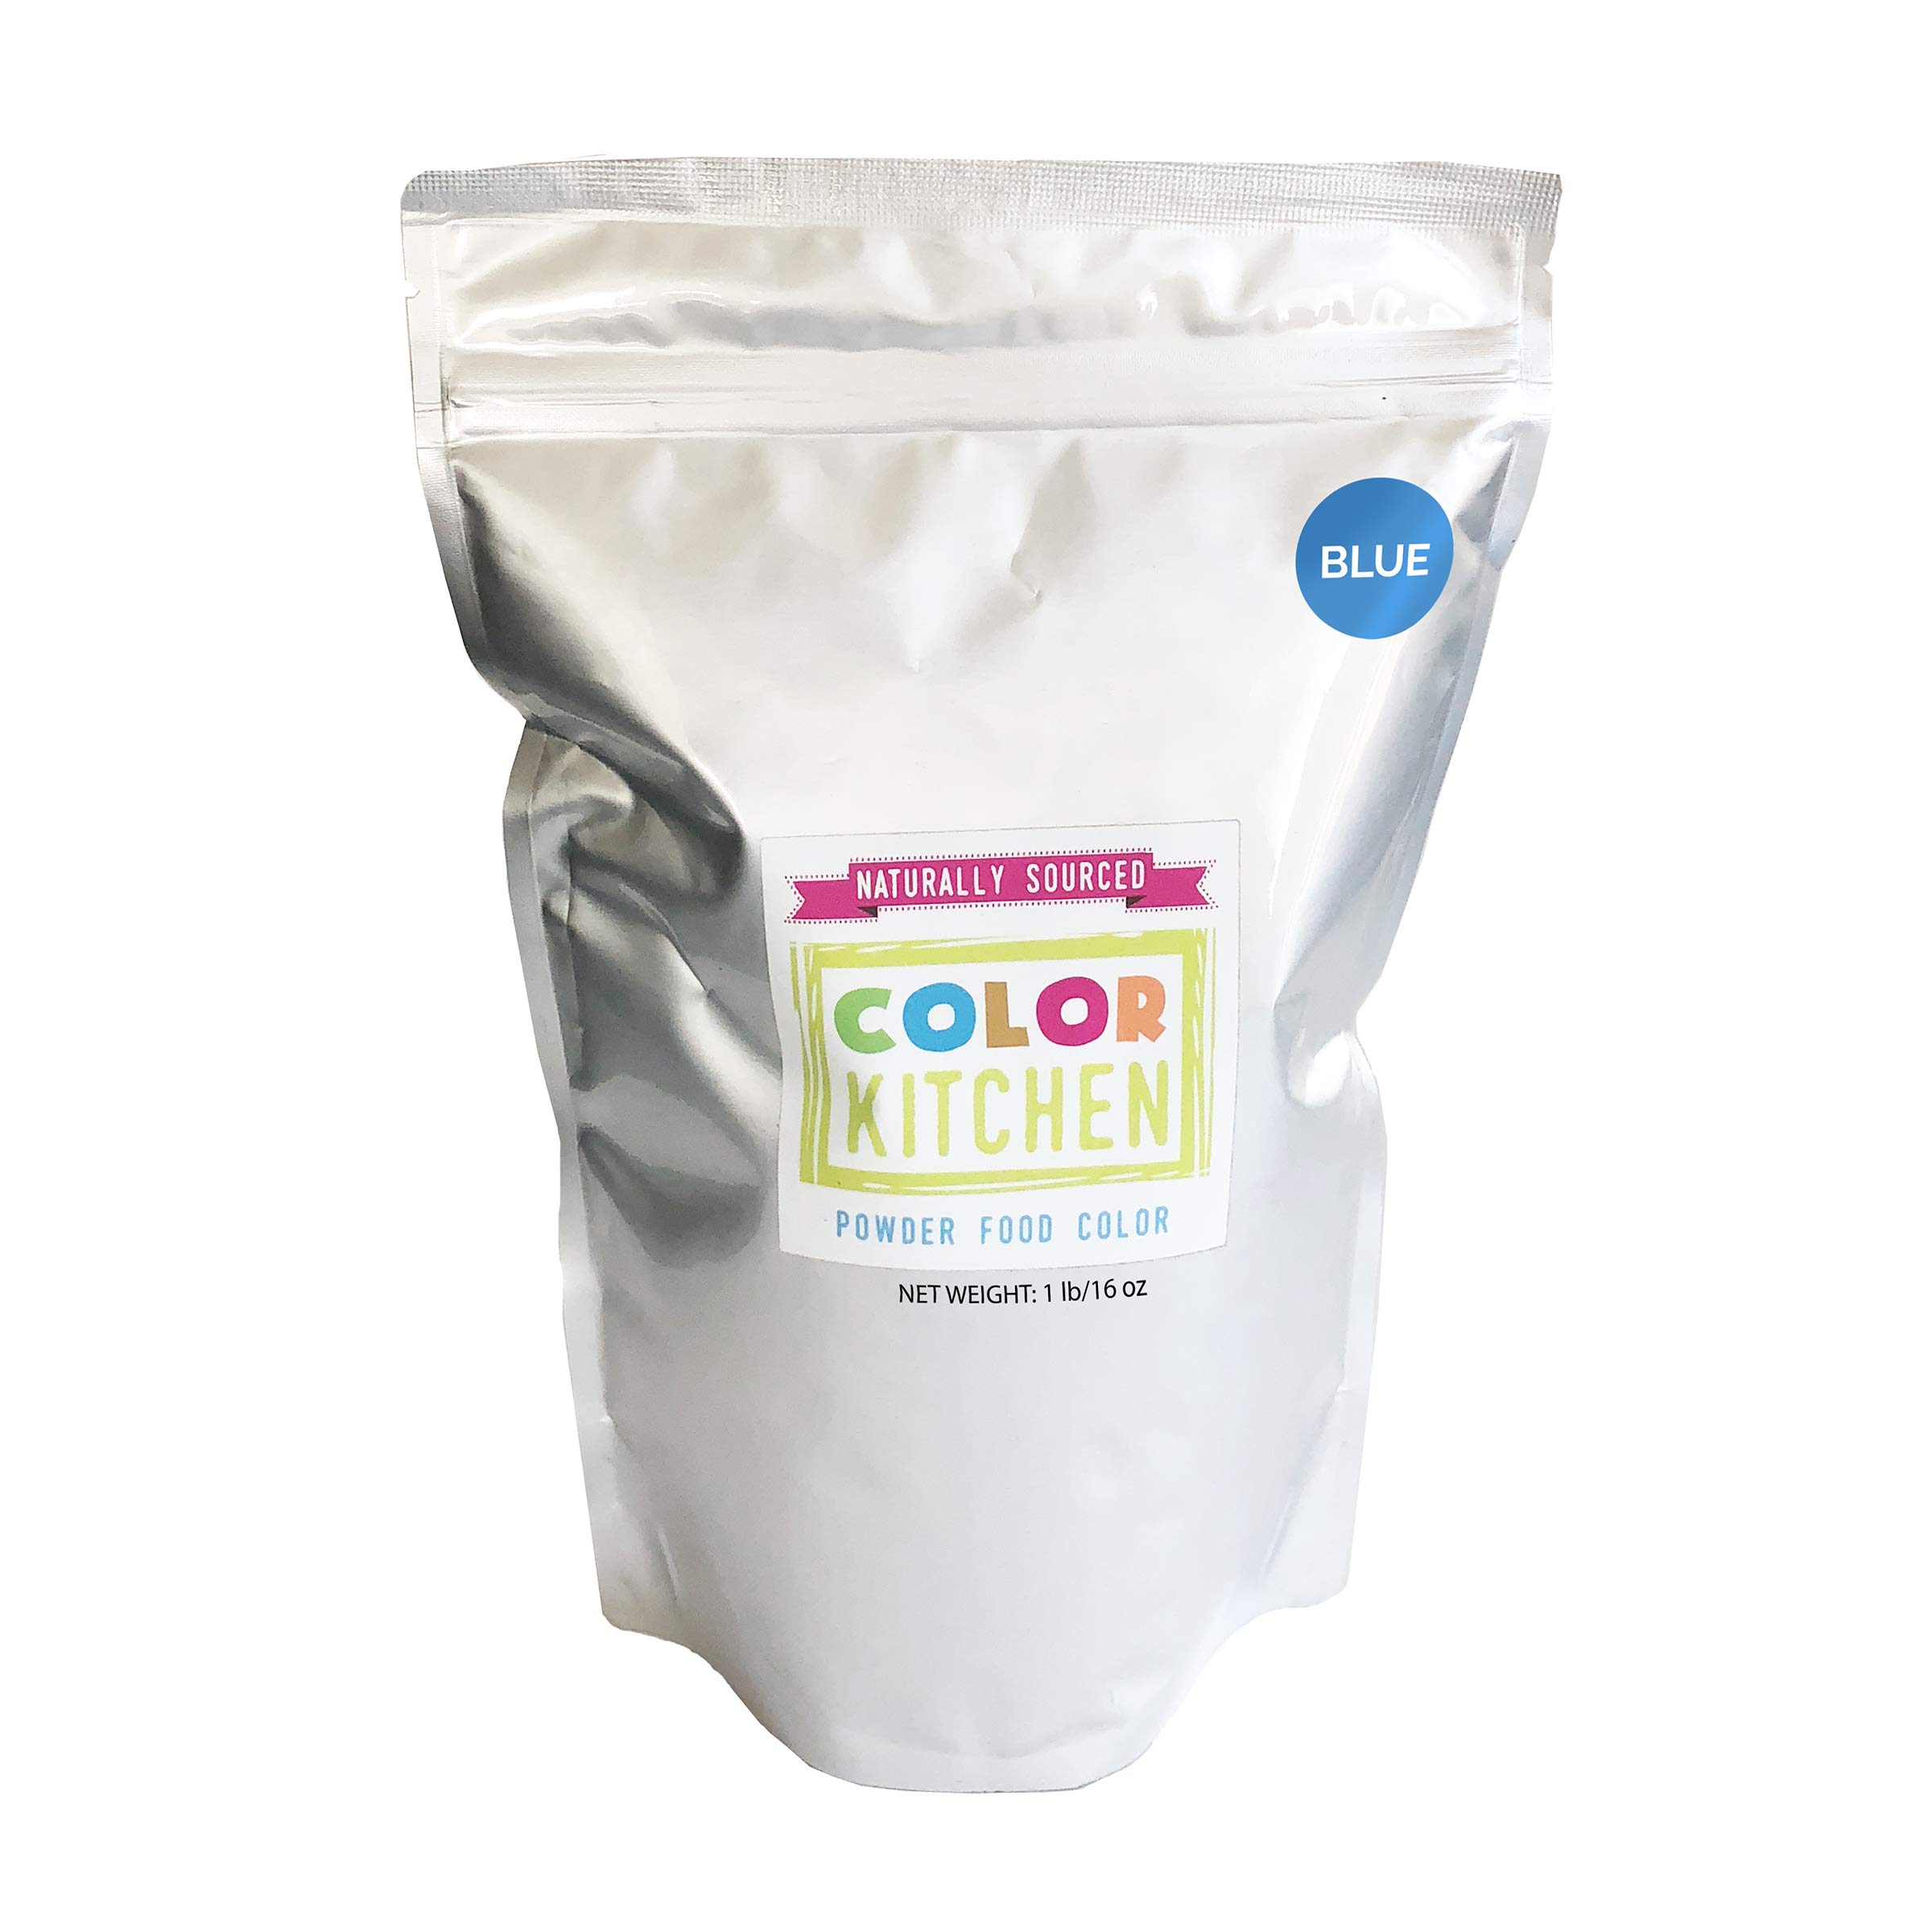 ColorKitchen Blue Food Coloring Powder (1lb Bulk Bag) - All Natural with No Artificial Dyes by ColorKitchen (Image #1)